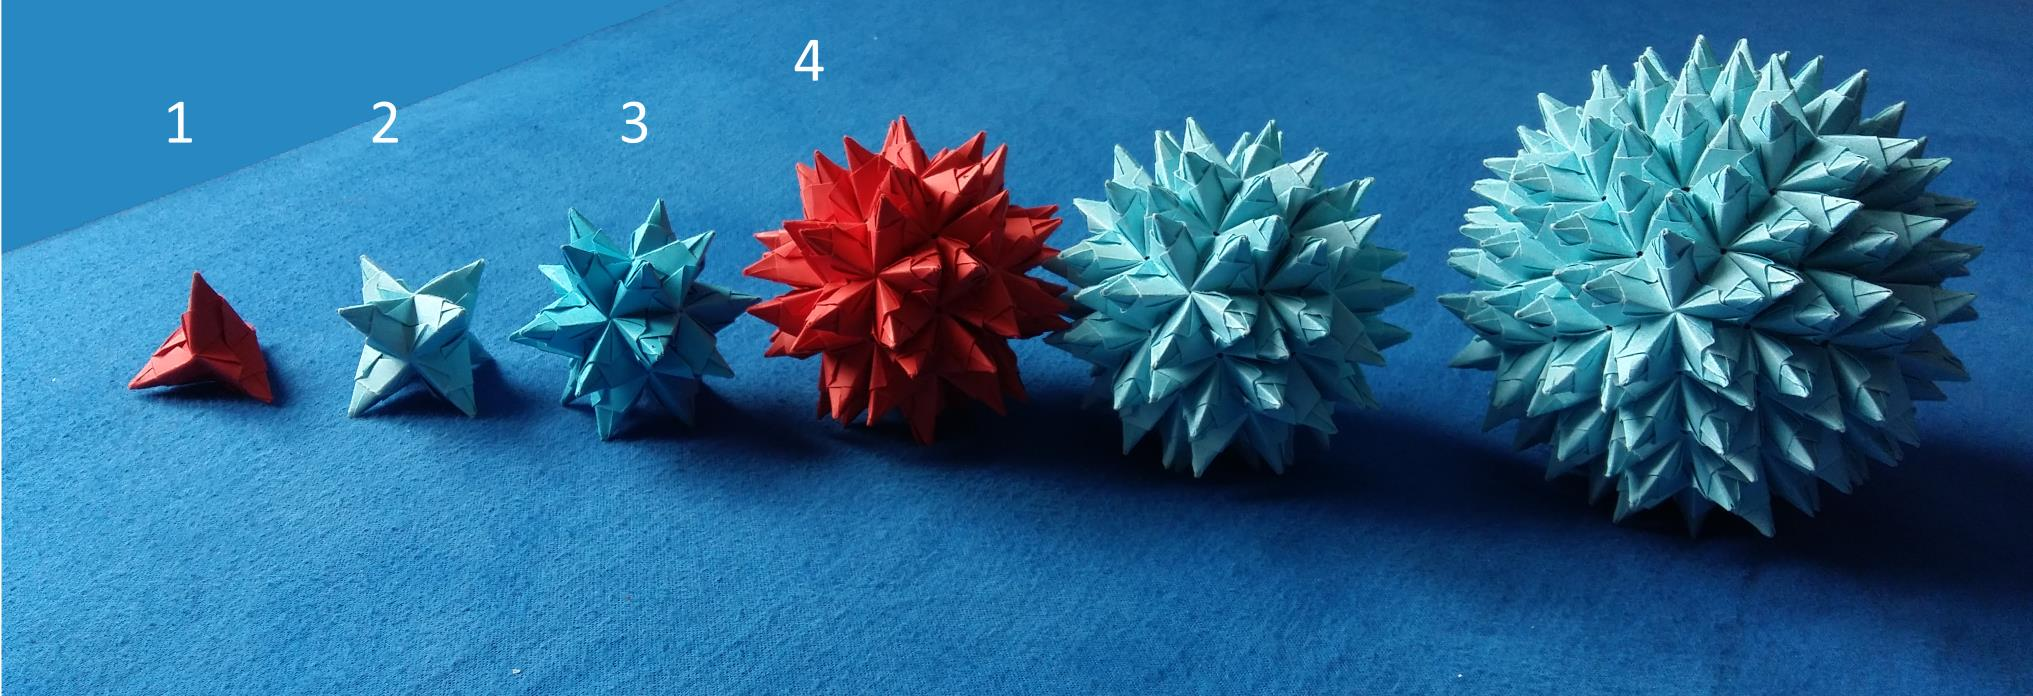 Modular Origami: How to Make a Cube, Octahedron & Icosahedron from ...   696x2033